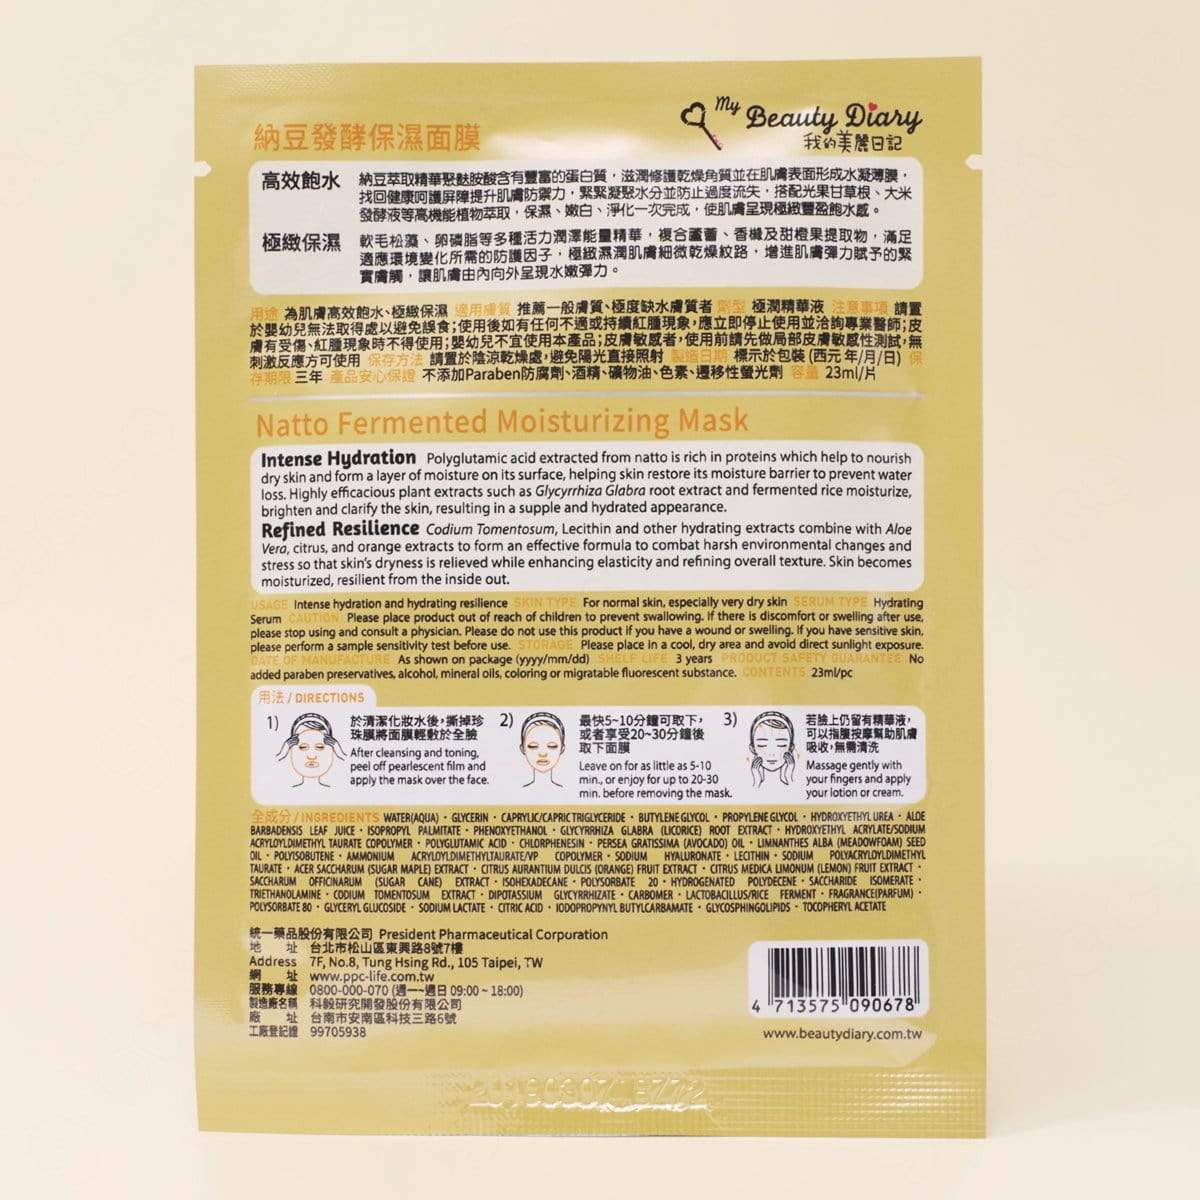 My Beauty Diary Natto Fermented Moisturizing Sheet Mask